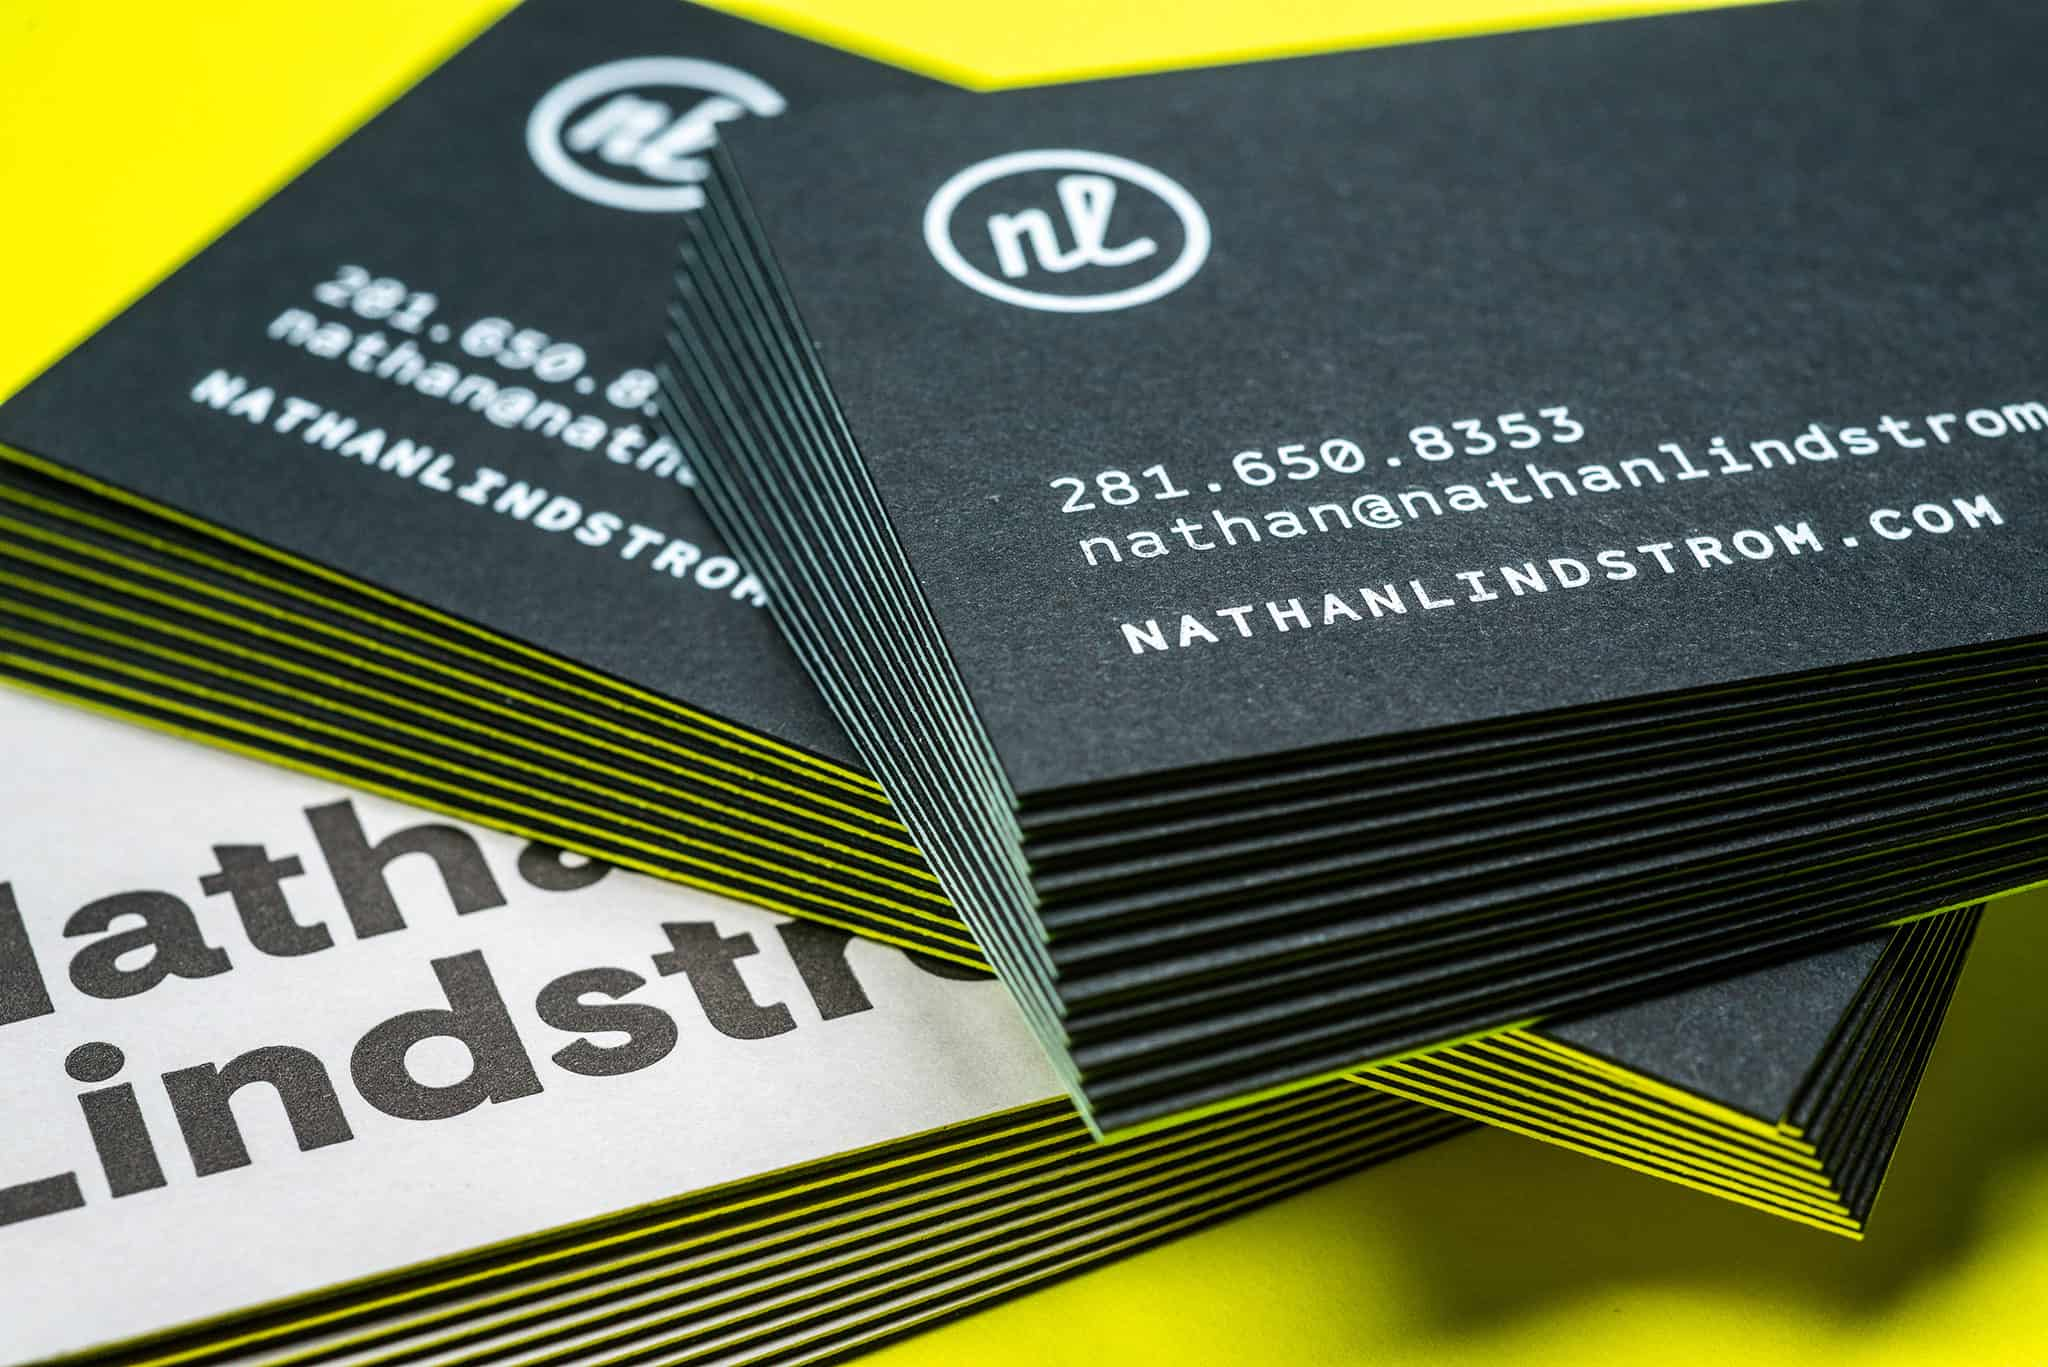 Letterpress printed and foil stamped duplex business cards for Nathan Lindstrom Photography | Designed by Field of Study: A branding and graphic design consultancy | Houston TX | Jennifer Blanco & John Earles